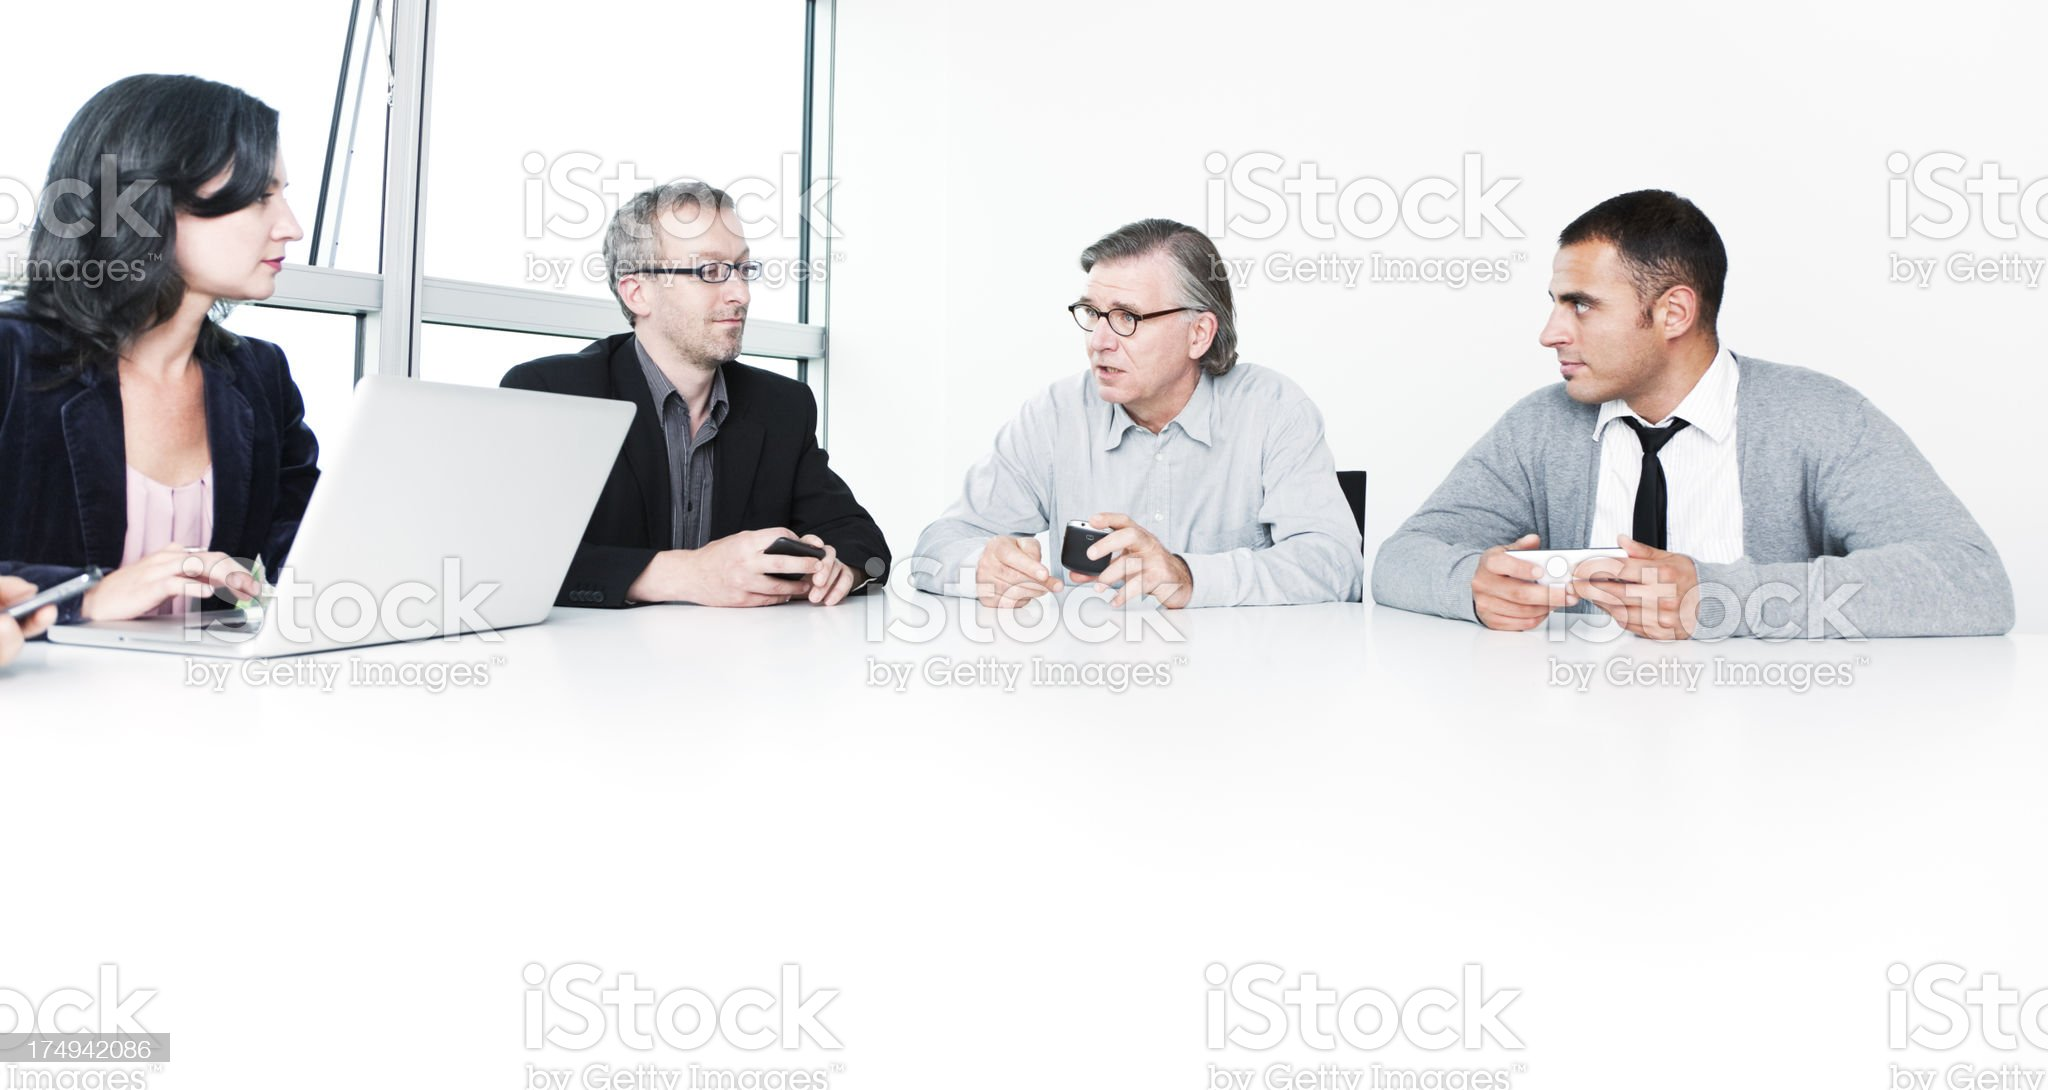 Business People with Laptop and Smart Phones at Conference Table royalty-free stock photo